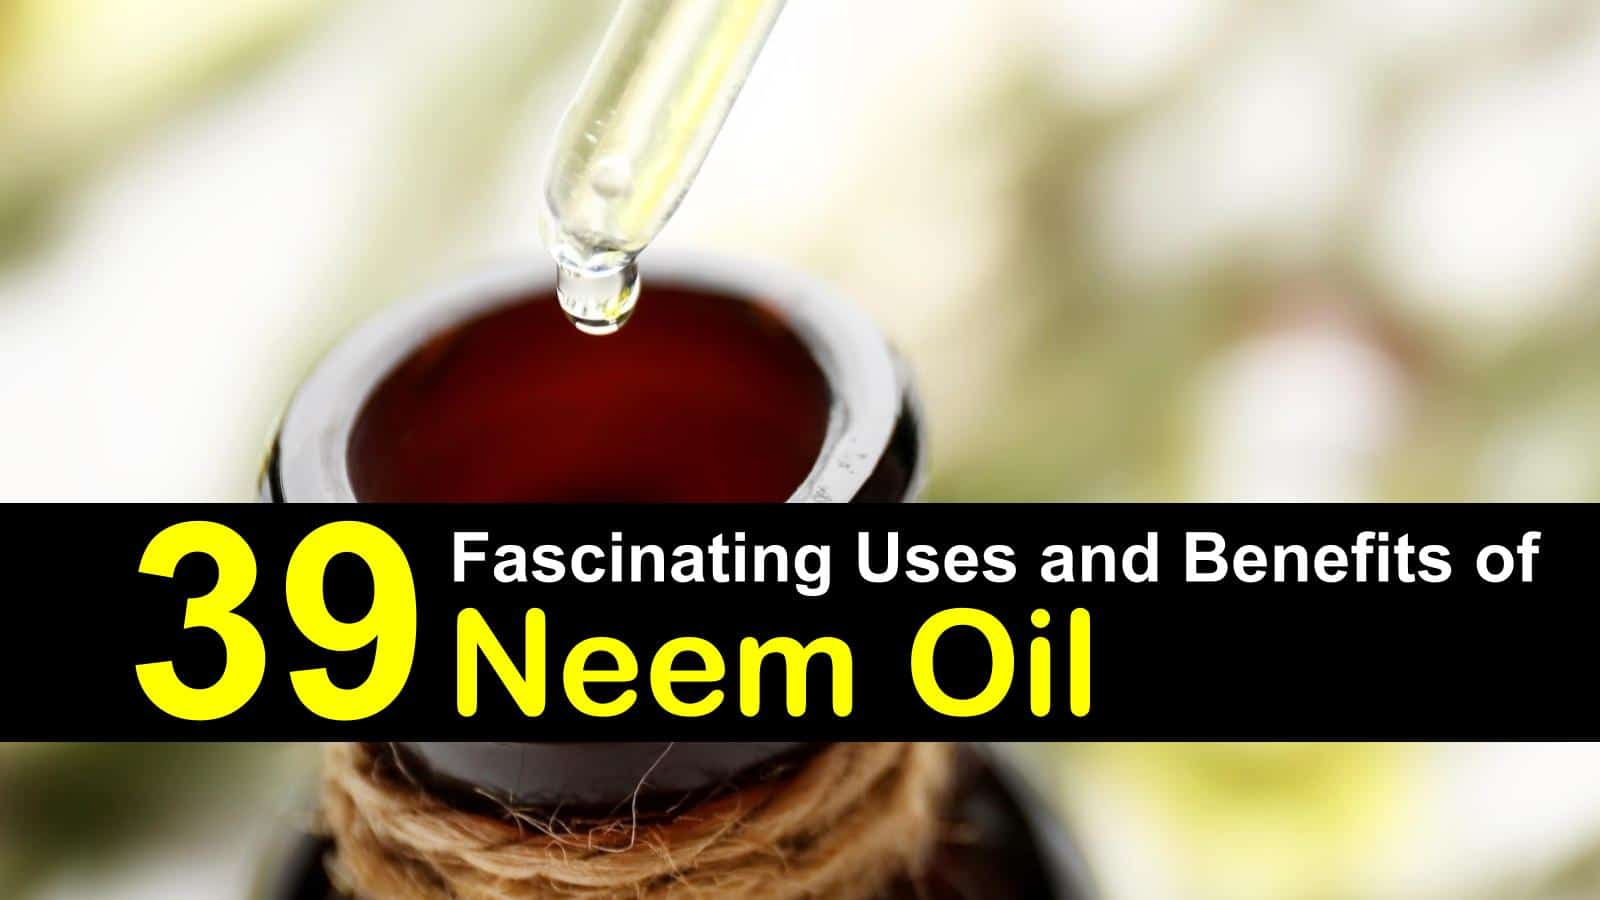 Neem Oil Benefits | ecogreenlove